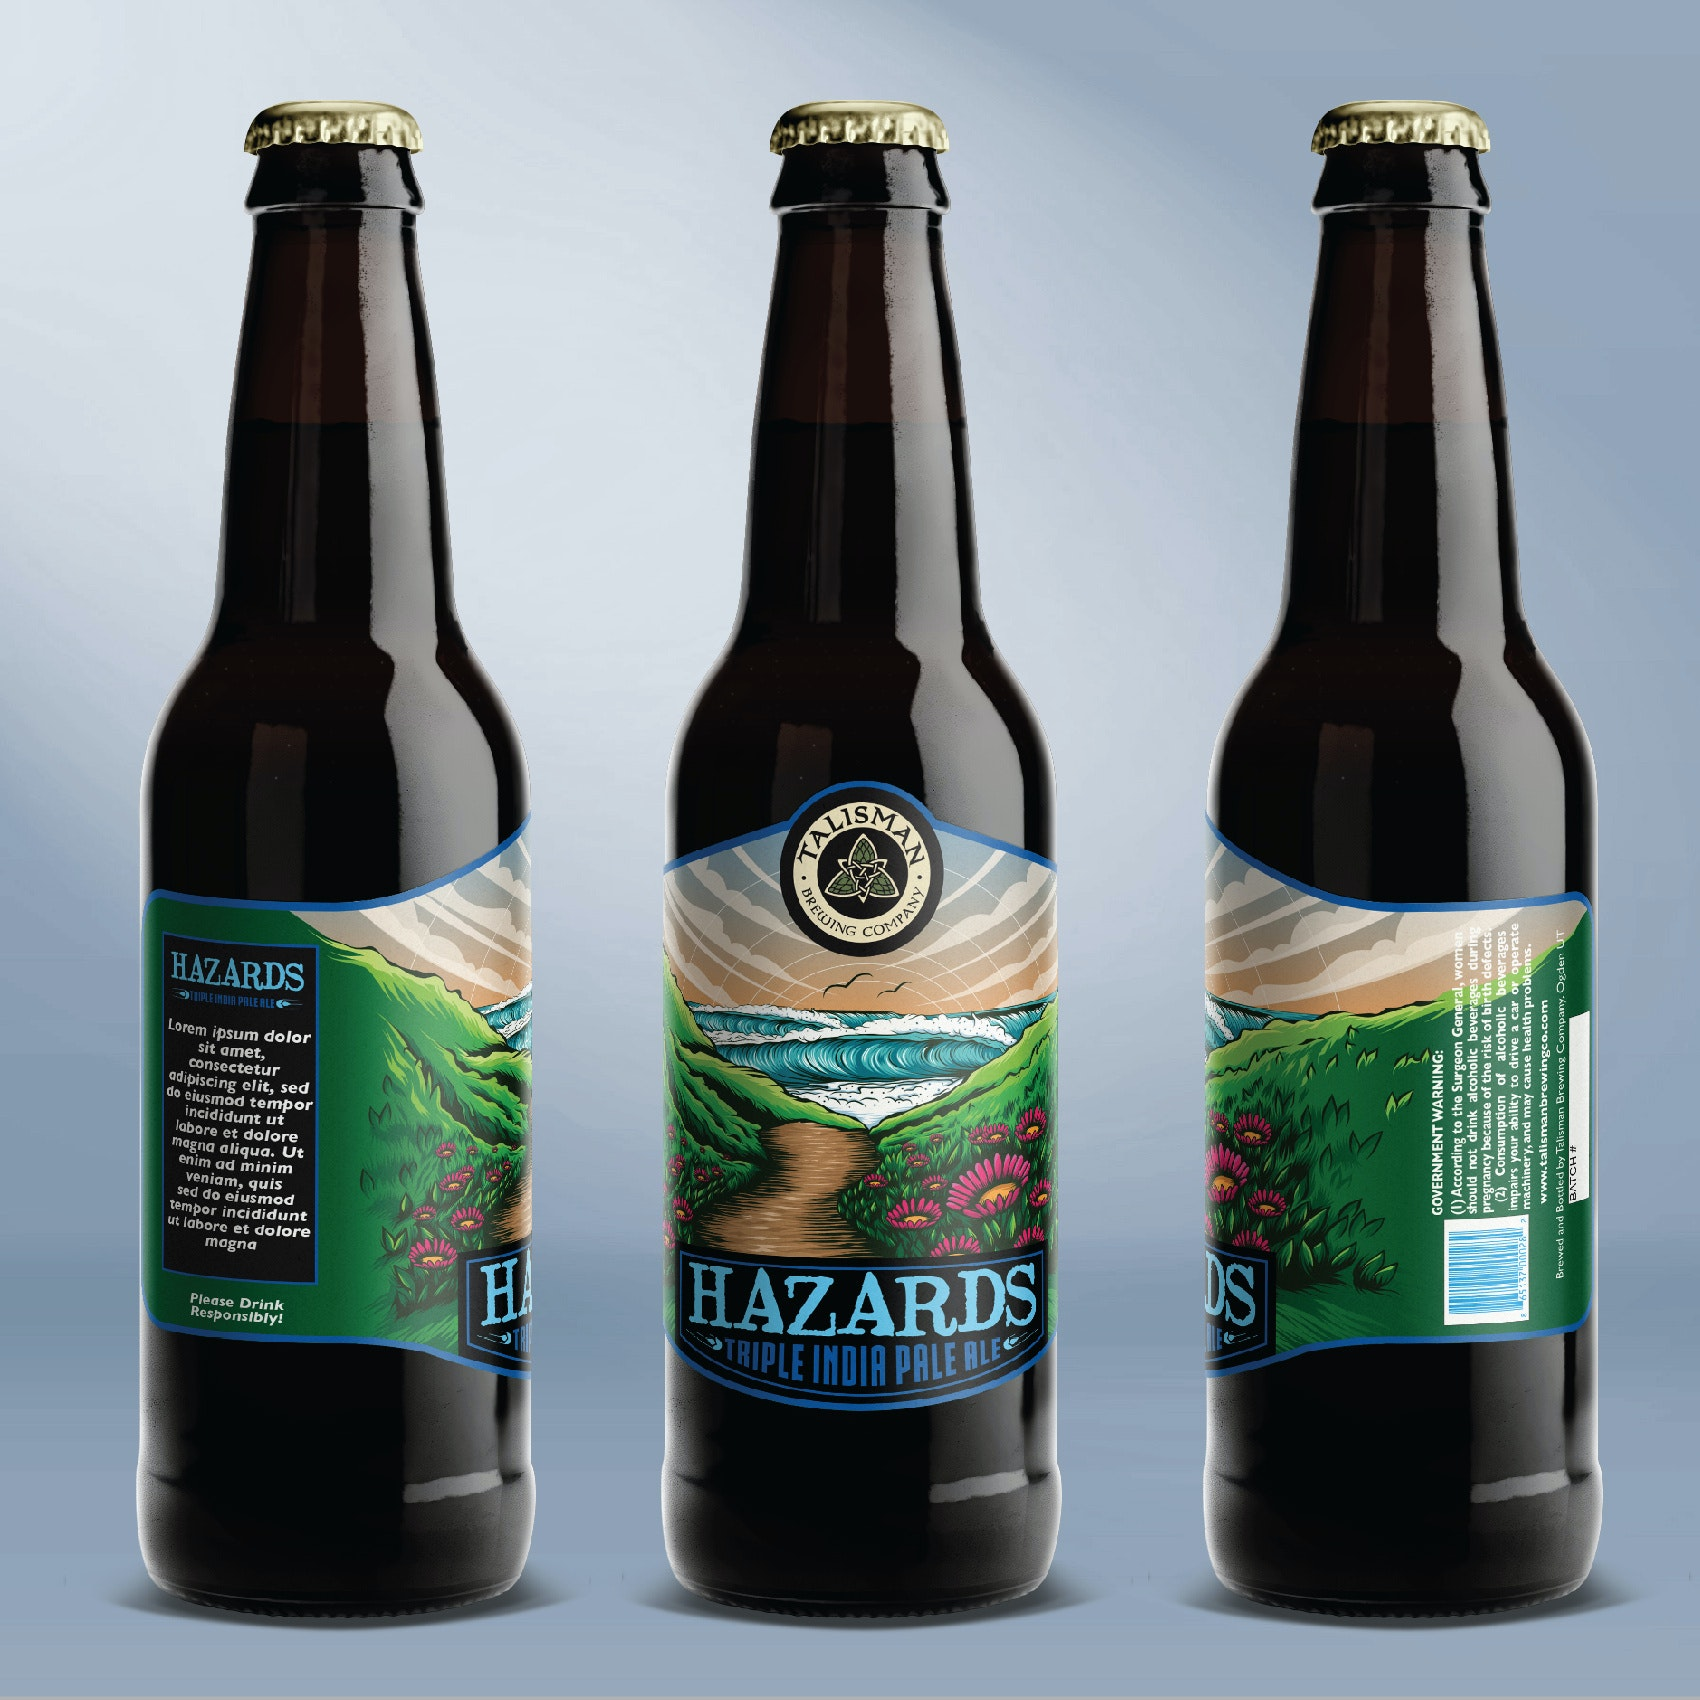 Hazards beer label